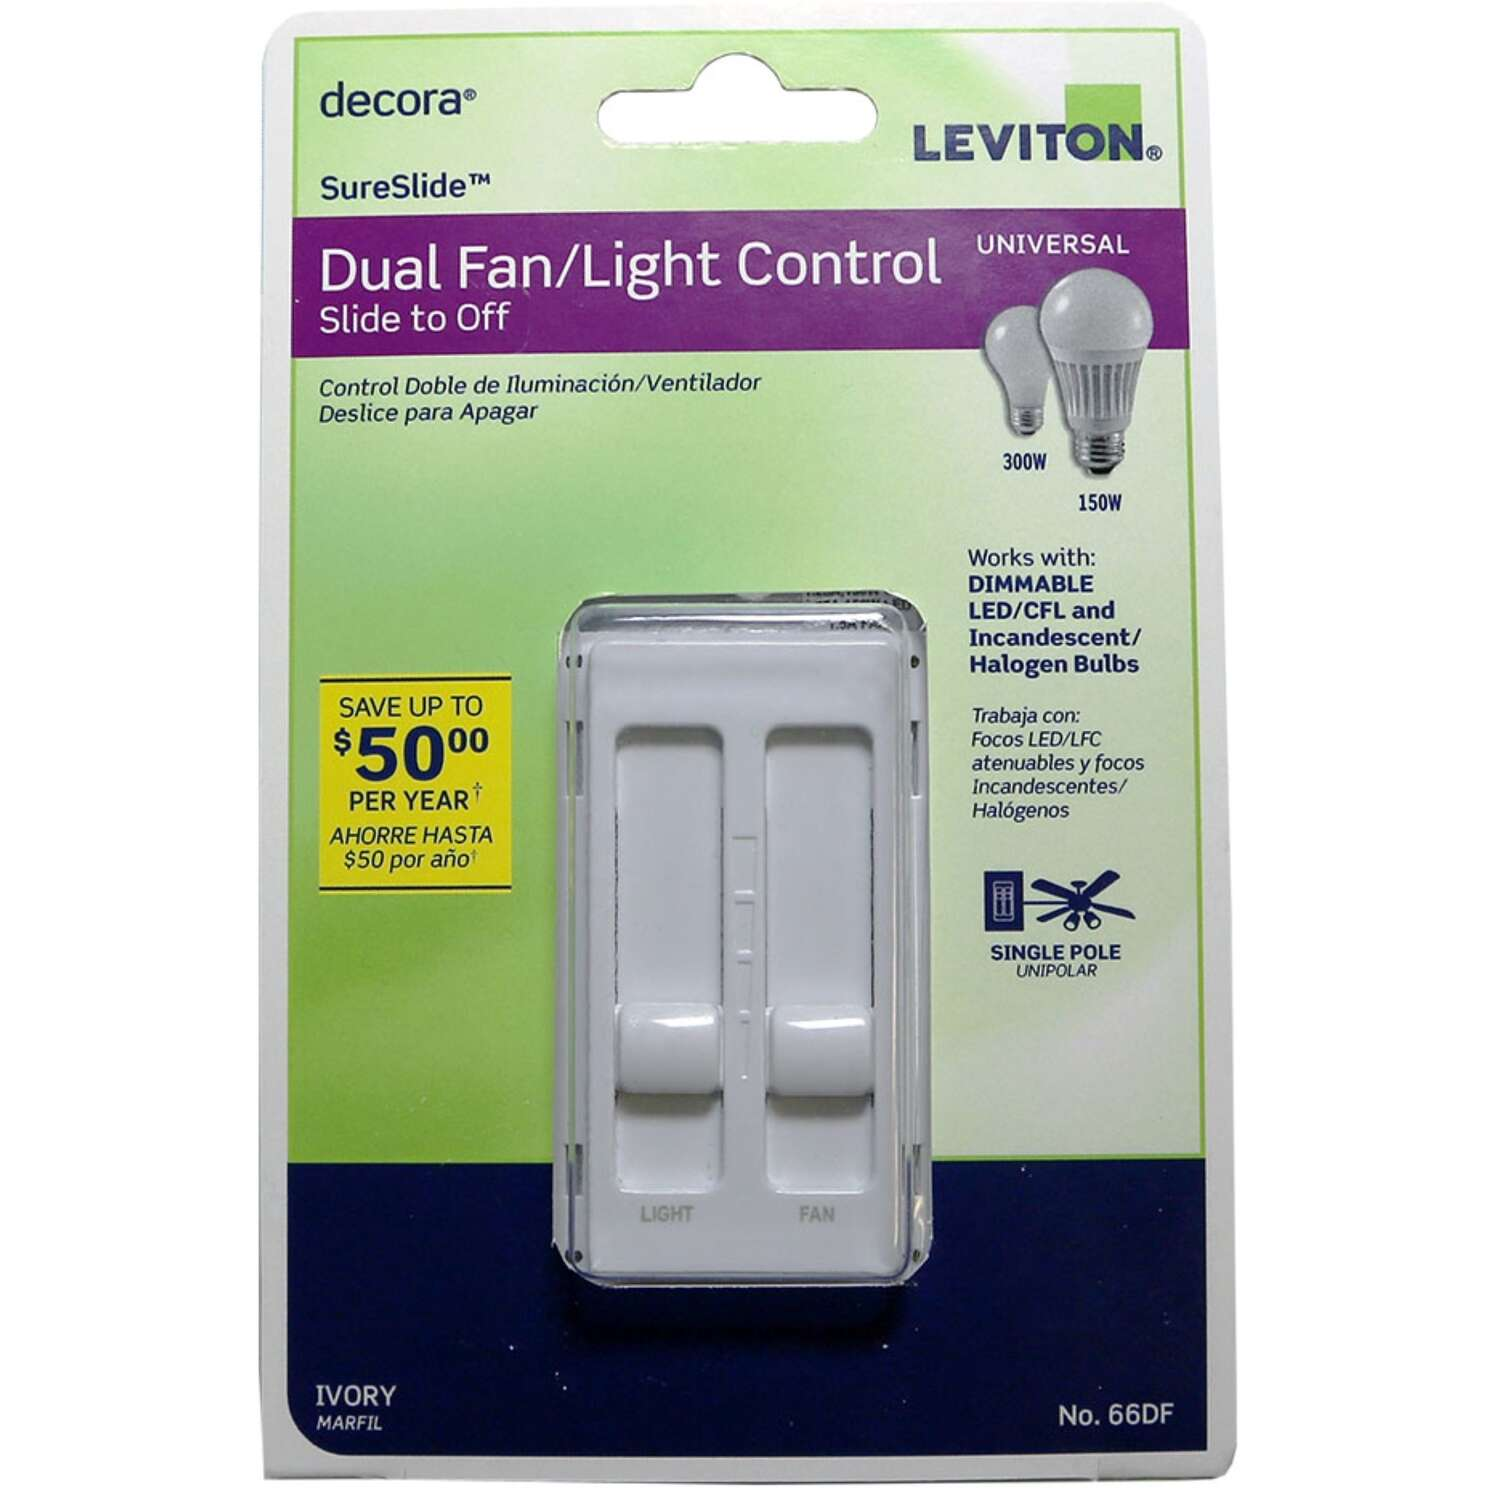 Leviton  Decora SureSlide  Ivory  Fan/LED  Dimmer Slide Switch  1 pk